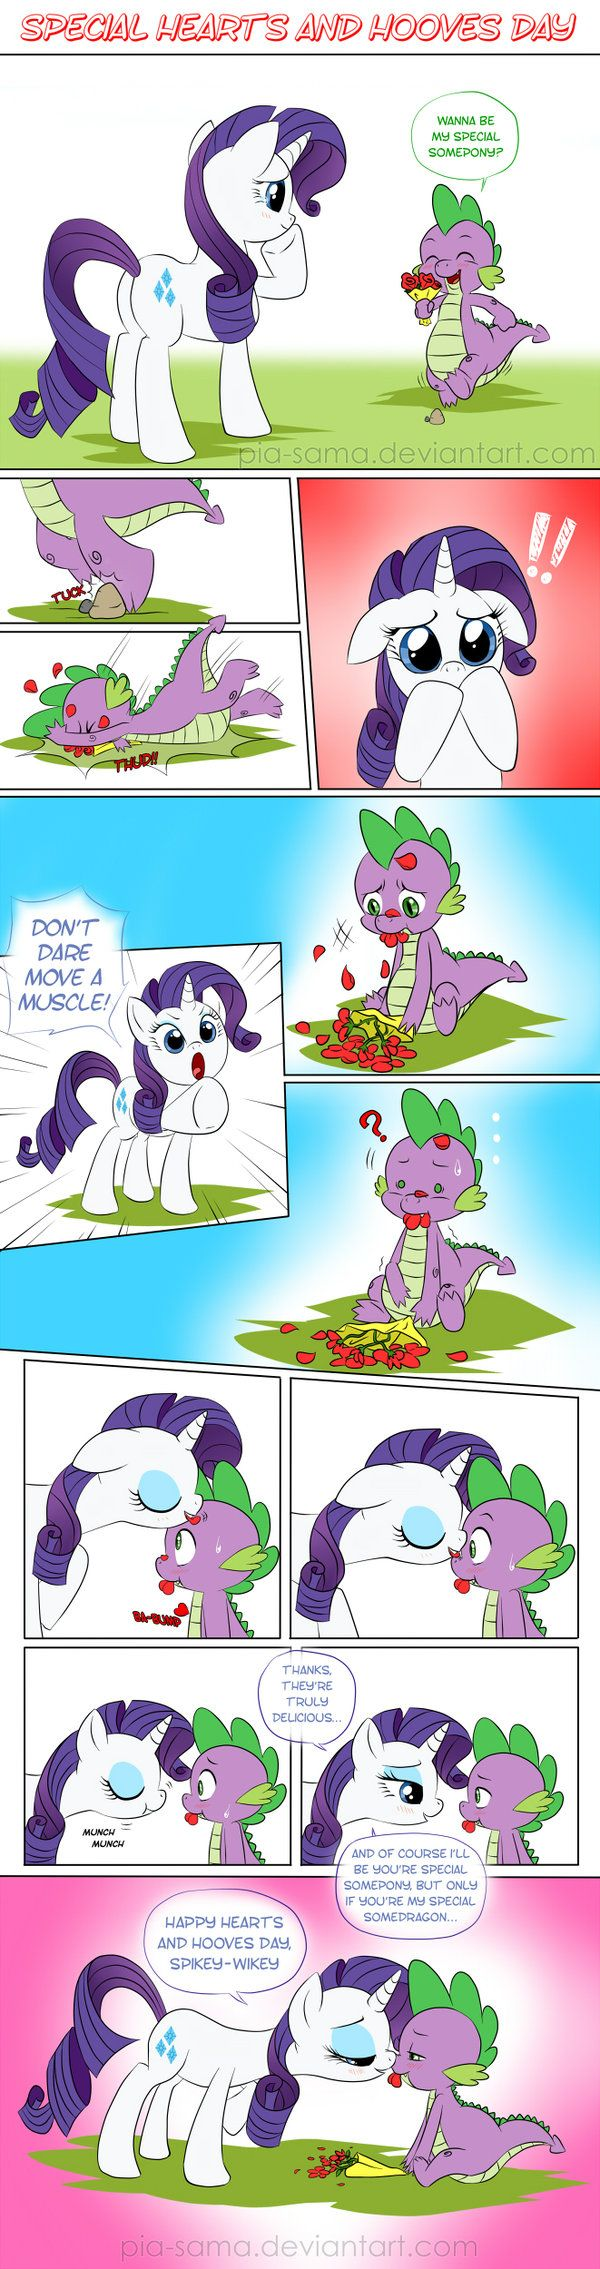 Special Hearts and Hooves Day by *Pia-sama on deviantART